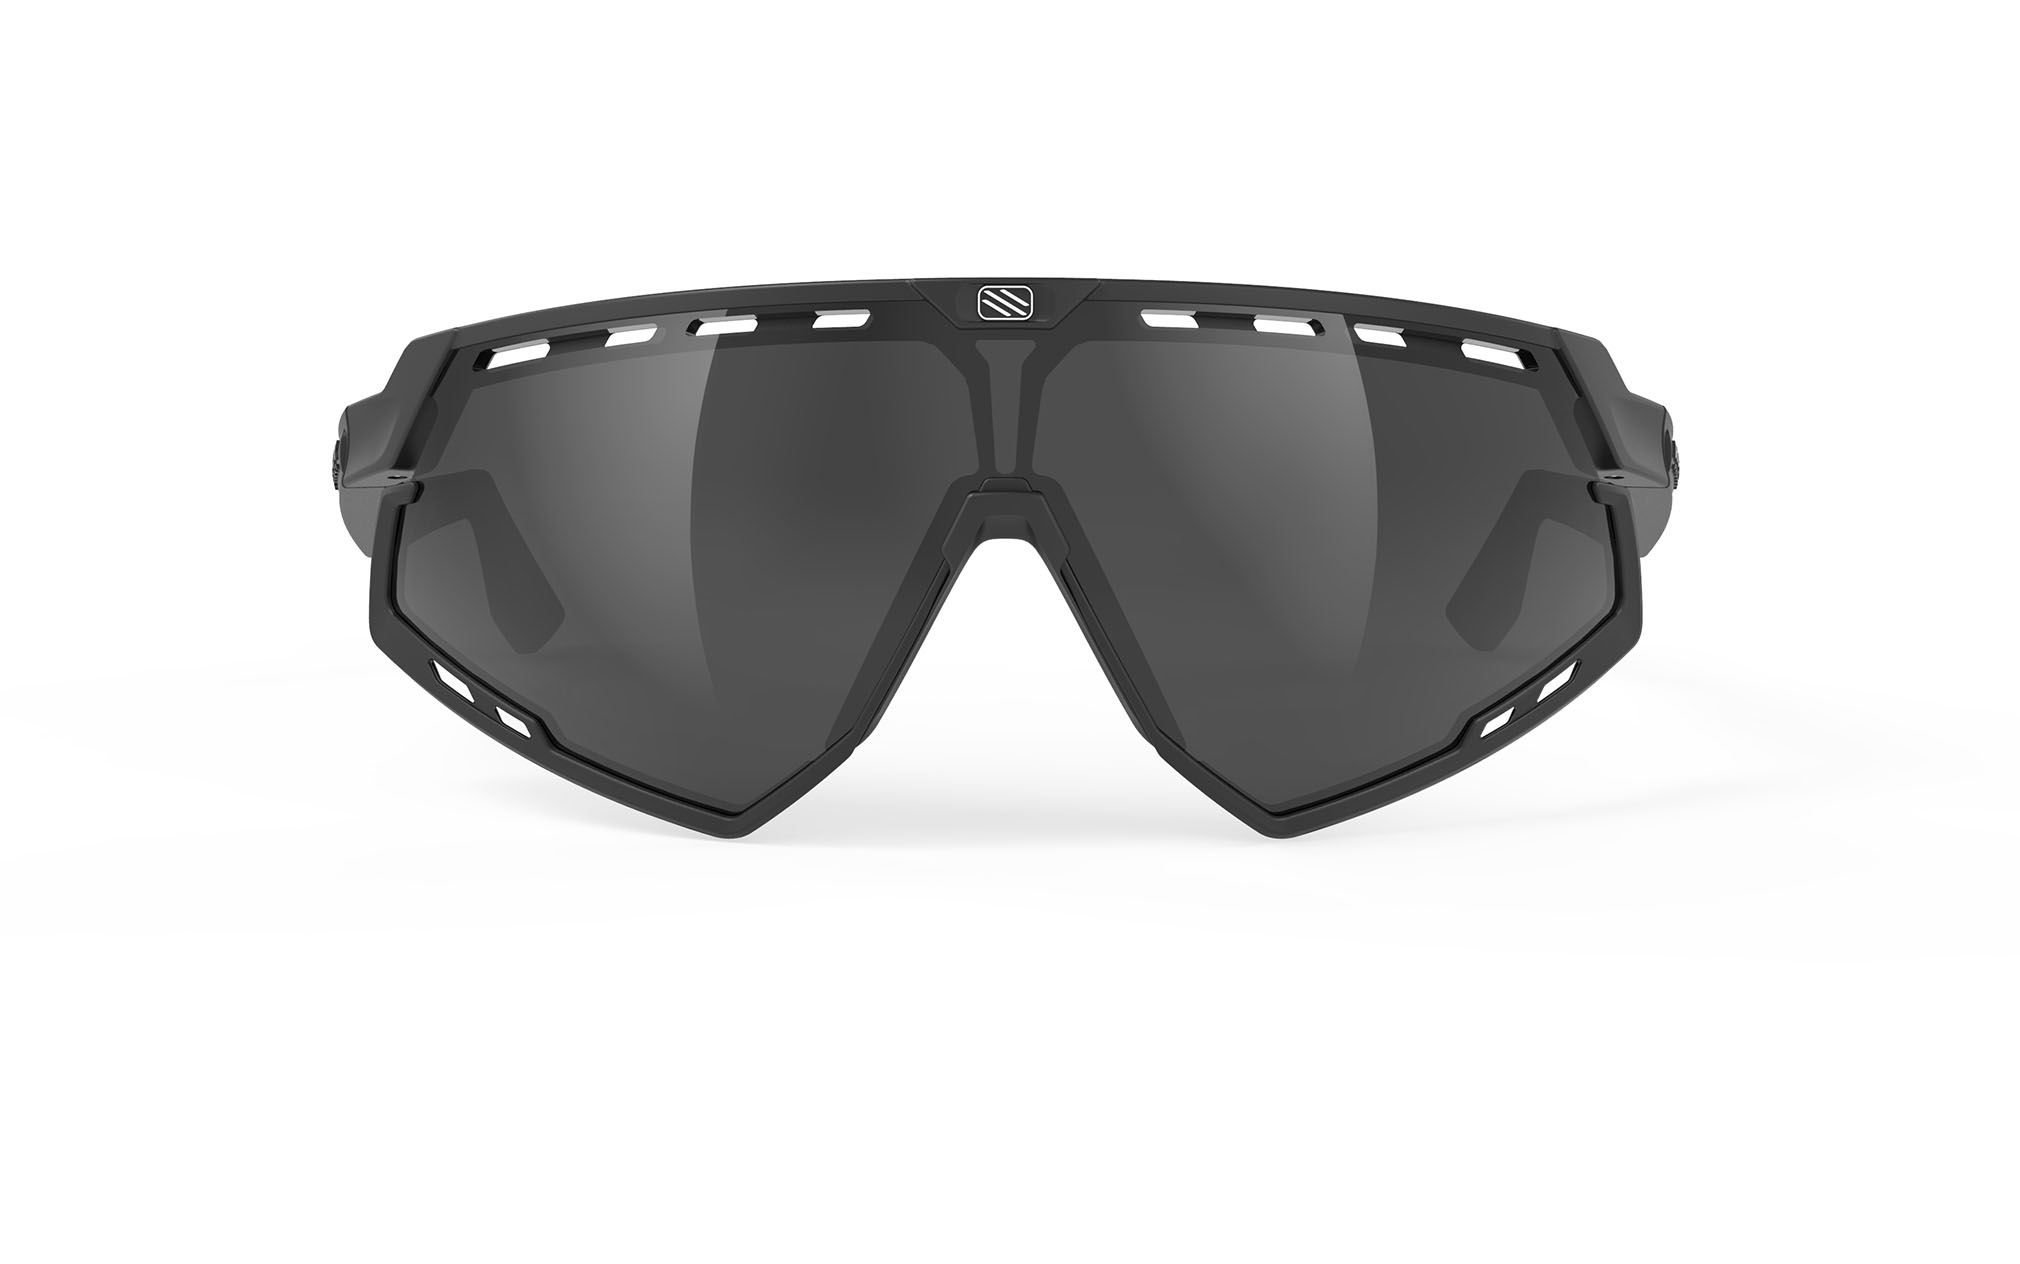 943d7aabfe Performance Eyewear Defender - Rudy Project